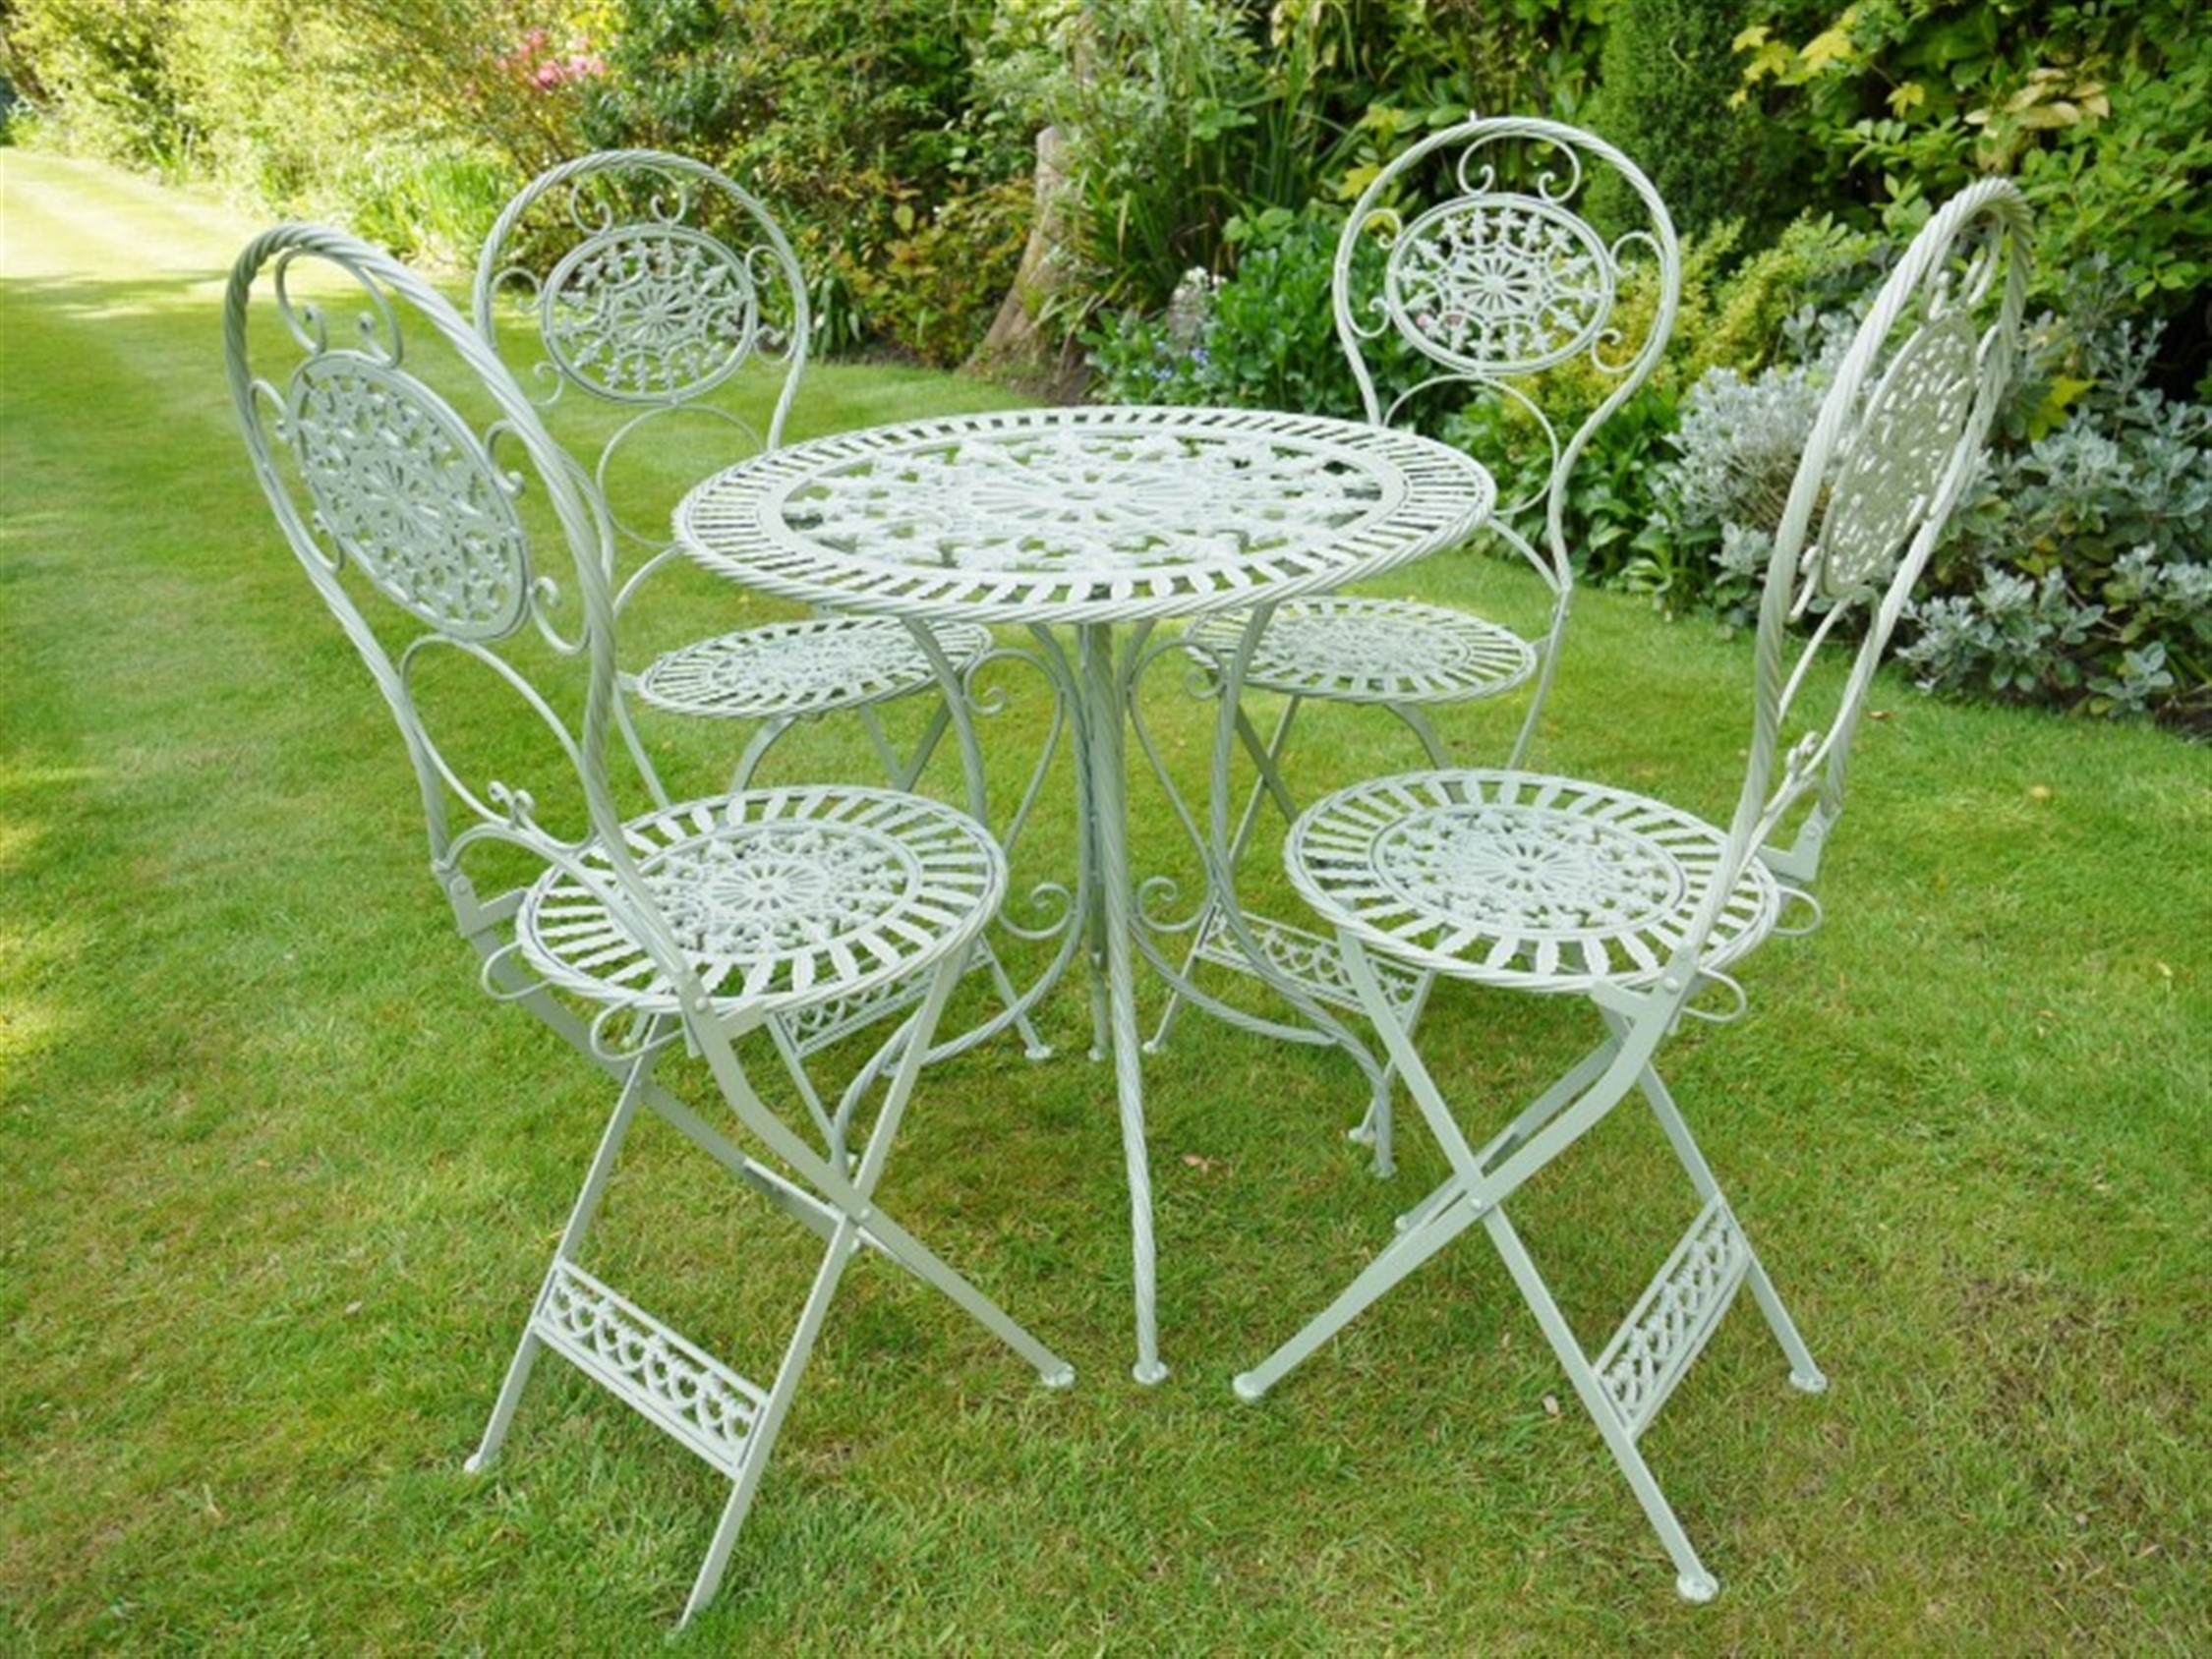 Europa leisure granada four seater patio set hayes garden world -  Hayes Garden World Steel And Cast Iron Bristo Set In Green Somerset South West Home Living Steel And